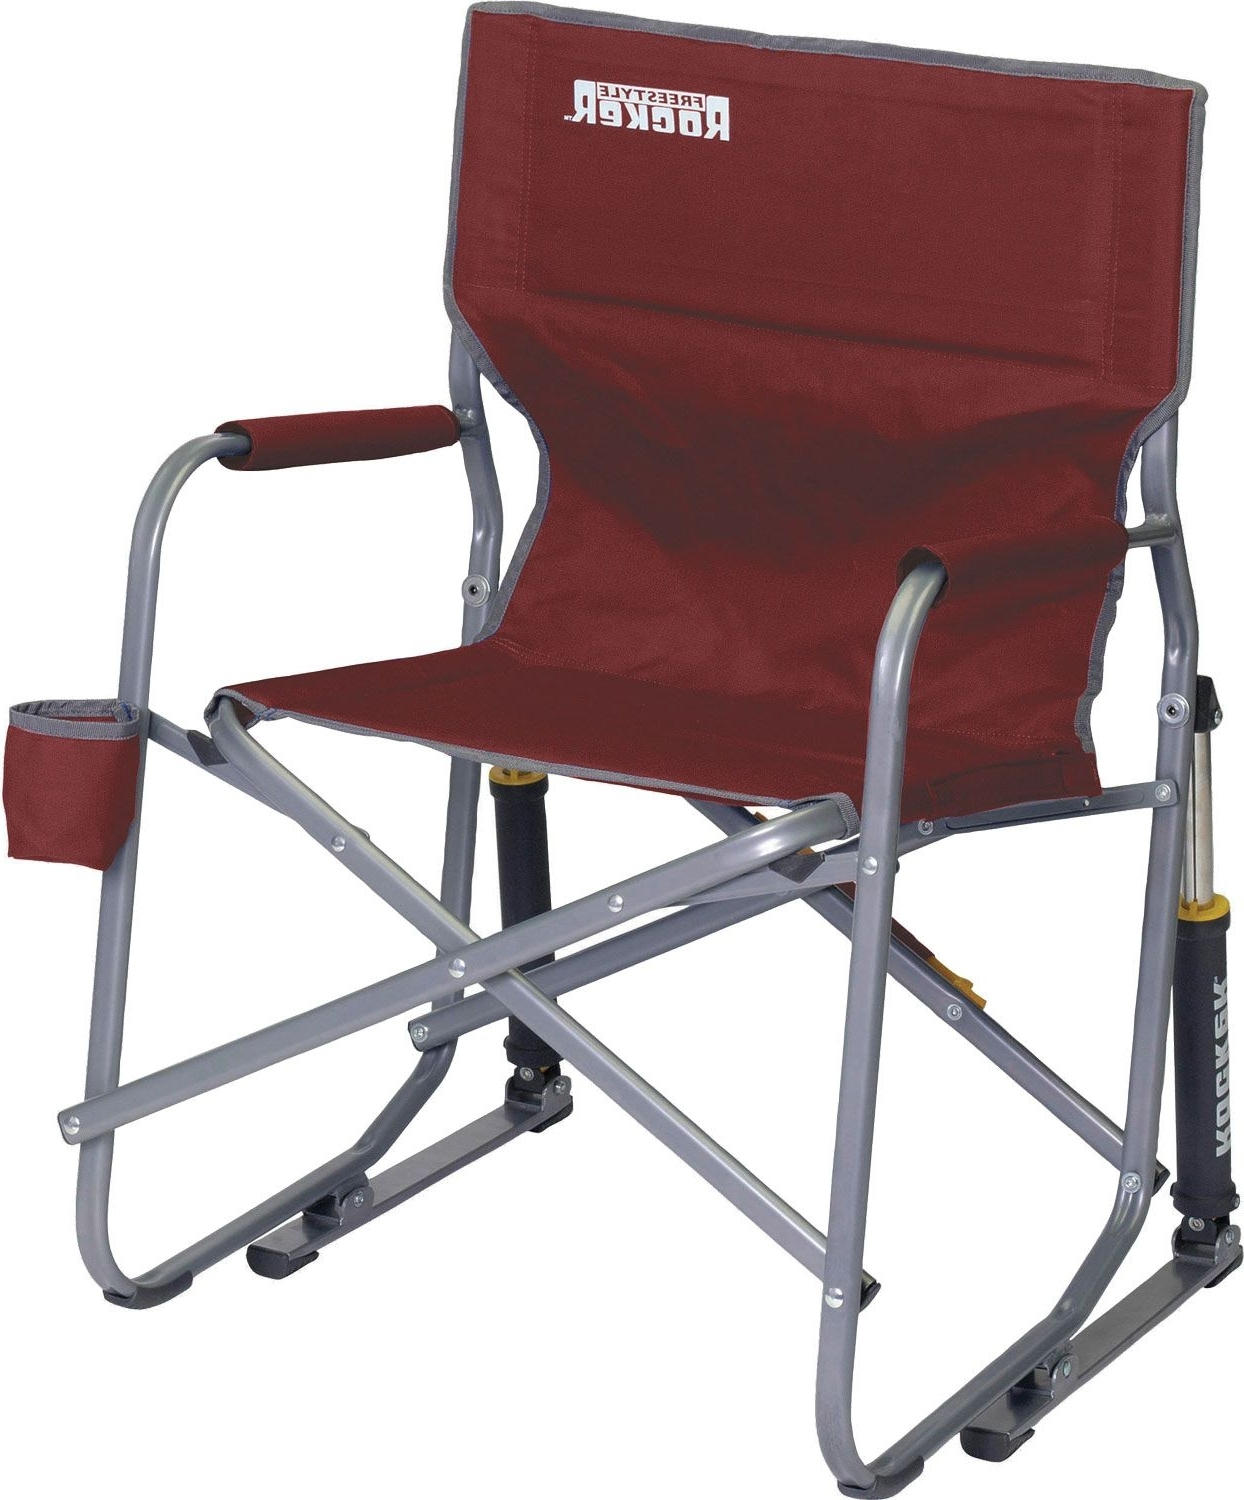 Widely Used Gci Outdoor Freestyle Rocker Chair Sporting Goods Cinnamon Folding Pertaining To Folding Rocking Chairs (View 19 of 20)